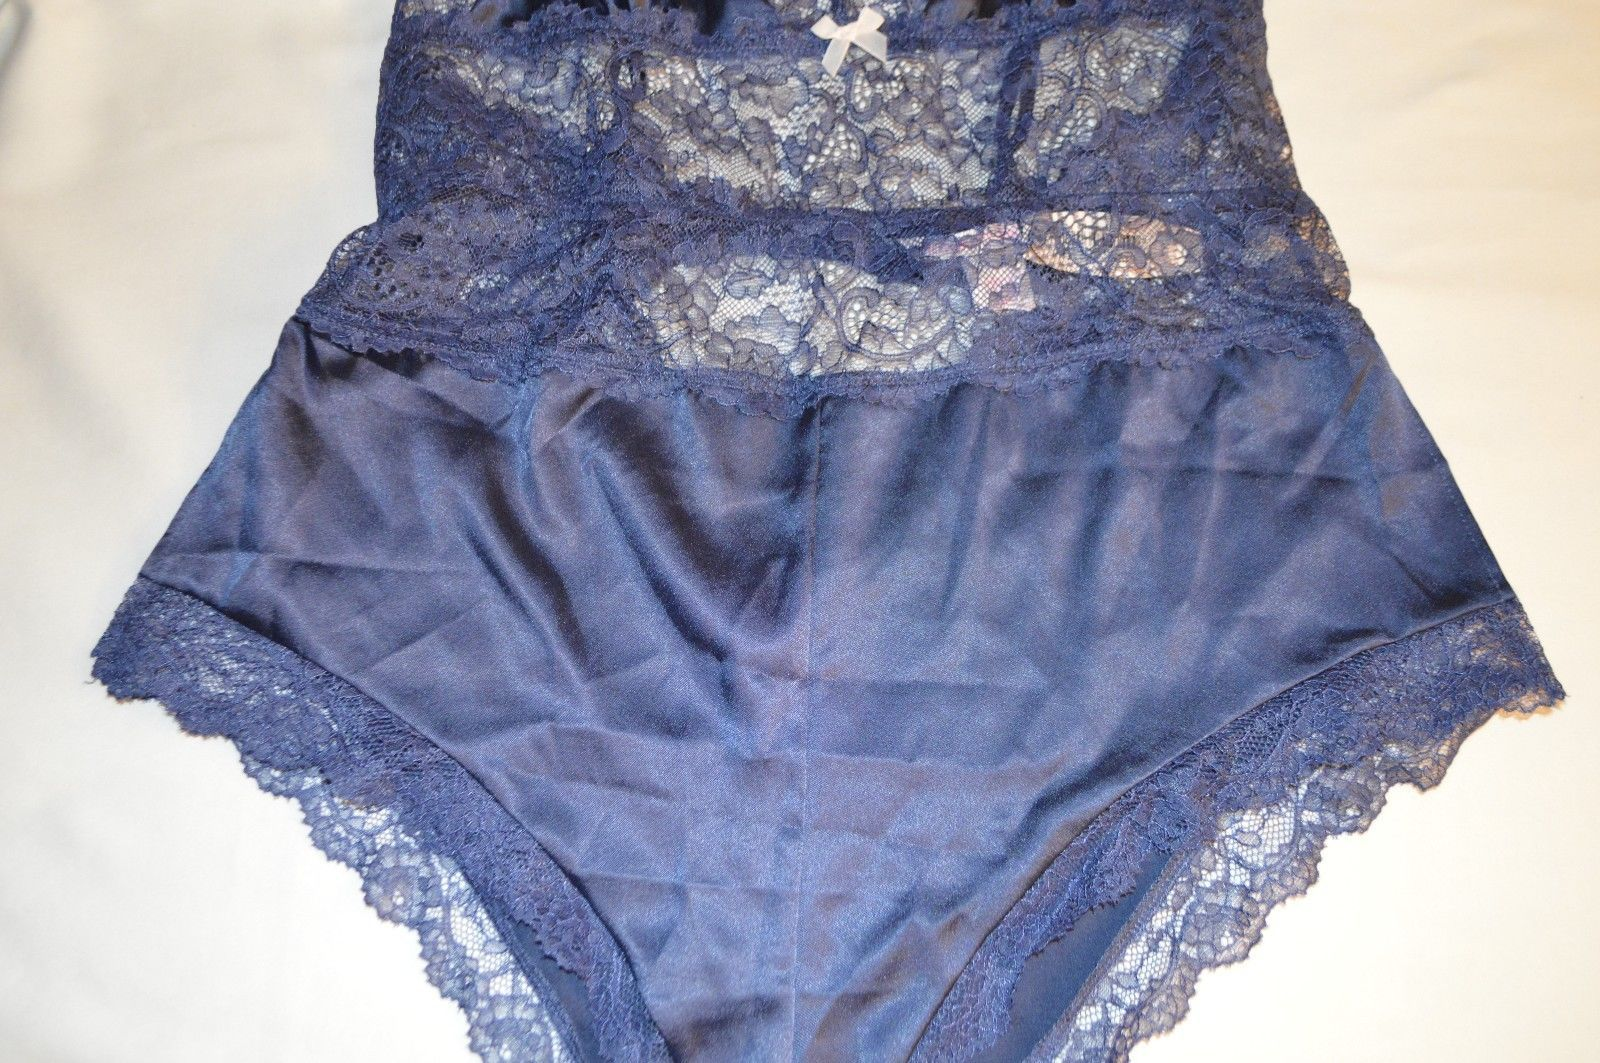 NWT Victoria s Secret Satin   Lace Teddy in and 50 similar items d2525446c